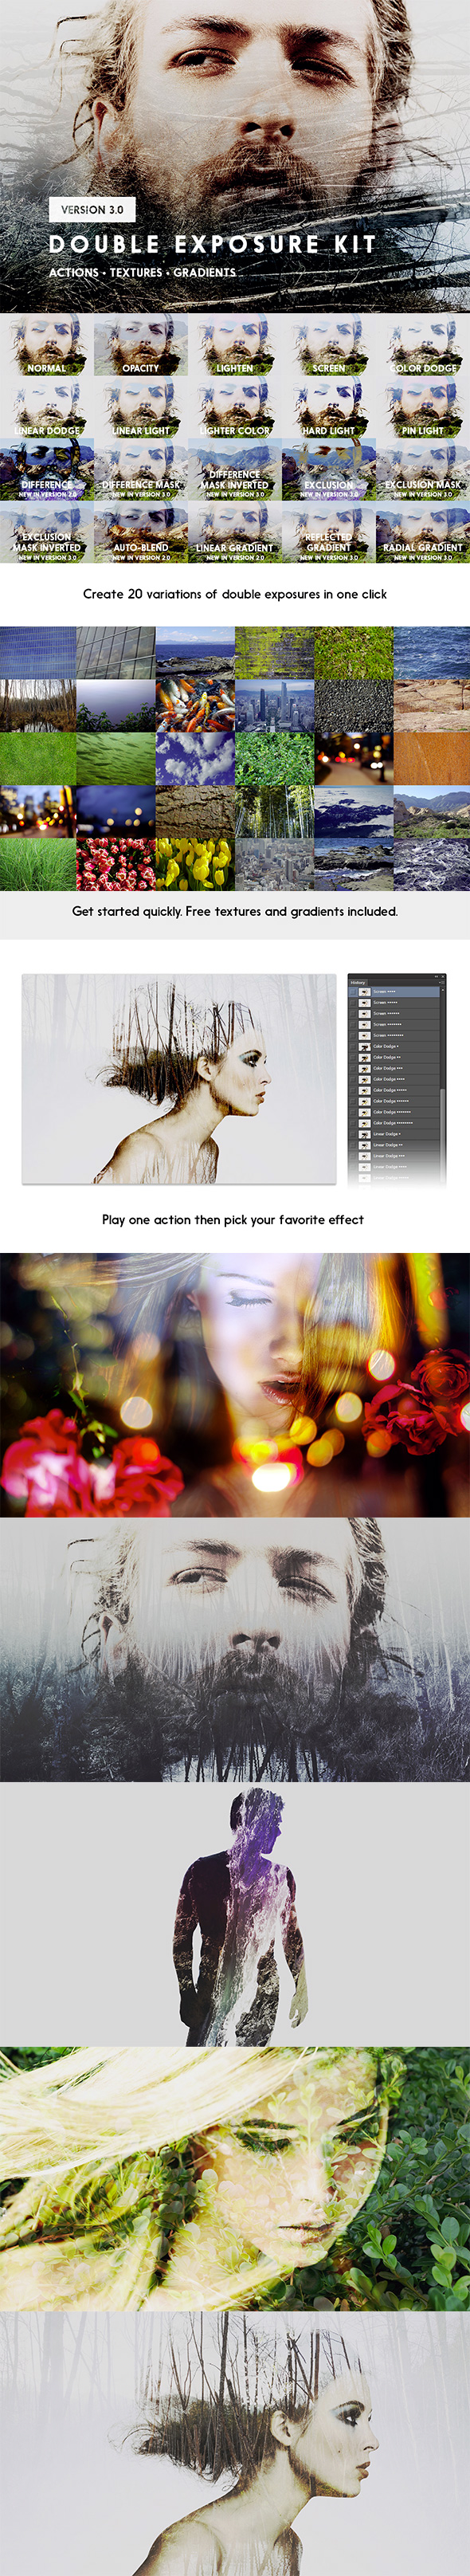 Double Exposure Kit - Actions Photoshop